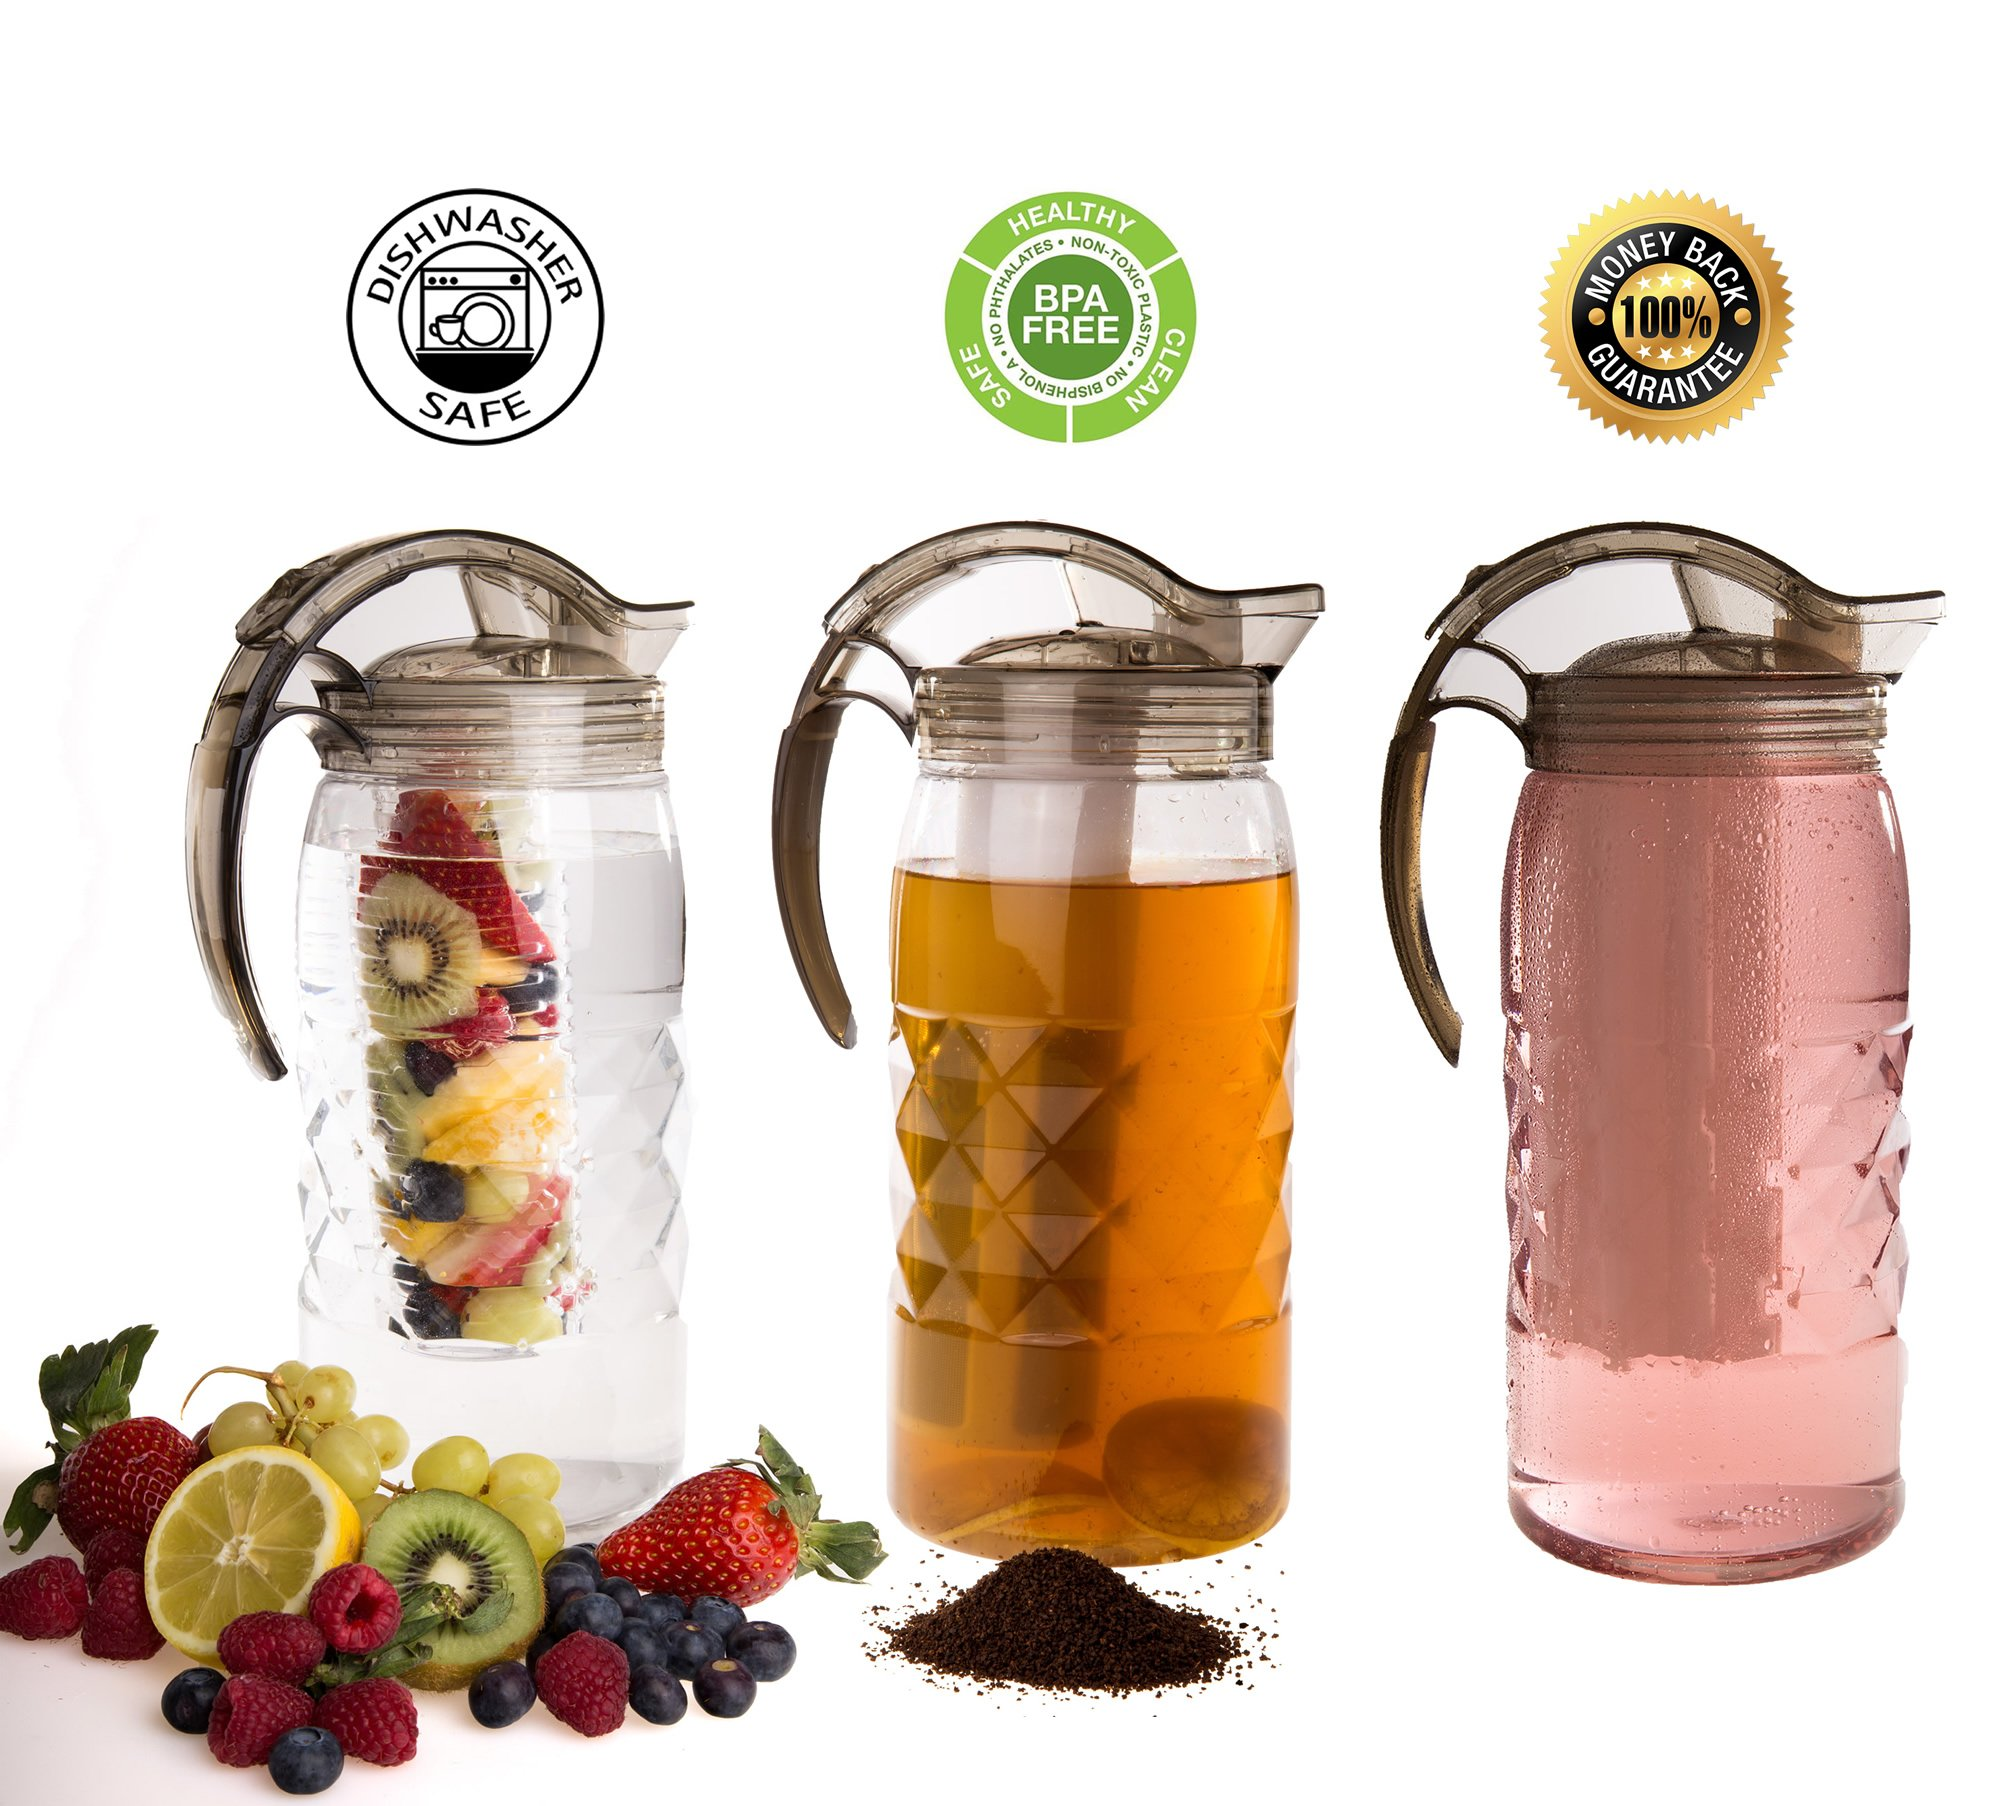 Water Infuser Pitcher For Tea, Herb, Fruit Infusion, Iced Vodka, Margarita, Tequila, Cocktails - Unique 3 Attachments Unbreakable Plastic Carafe Large 2.2qt 2.1ltr Capacity - Outdoor Indoor Use